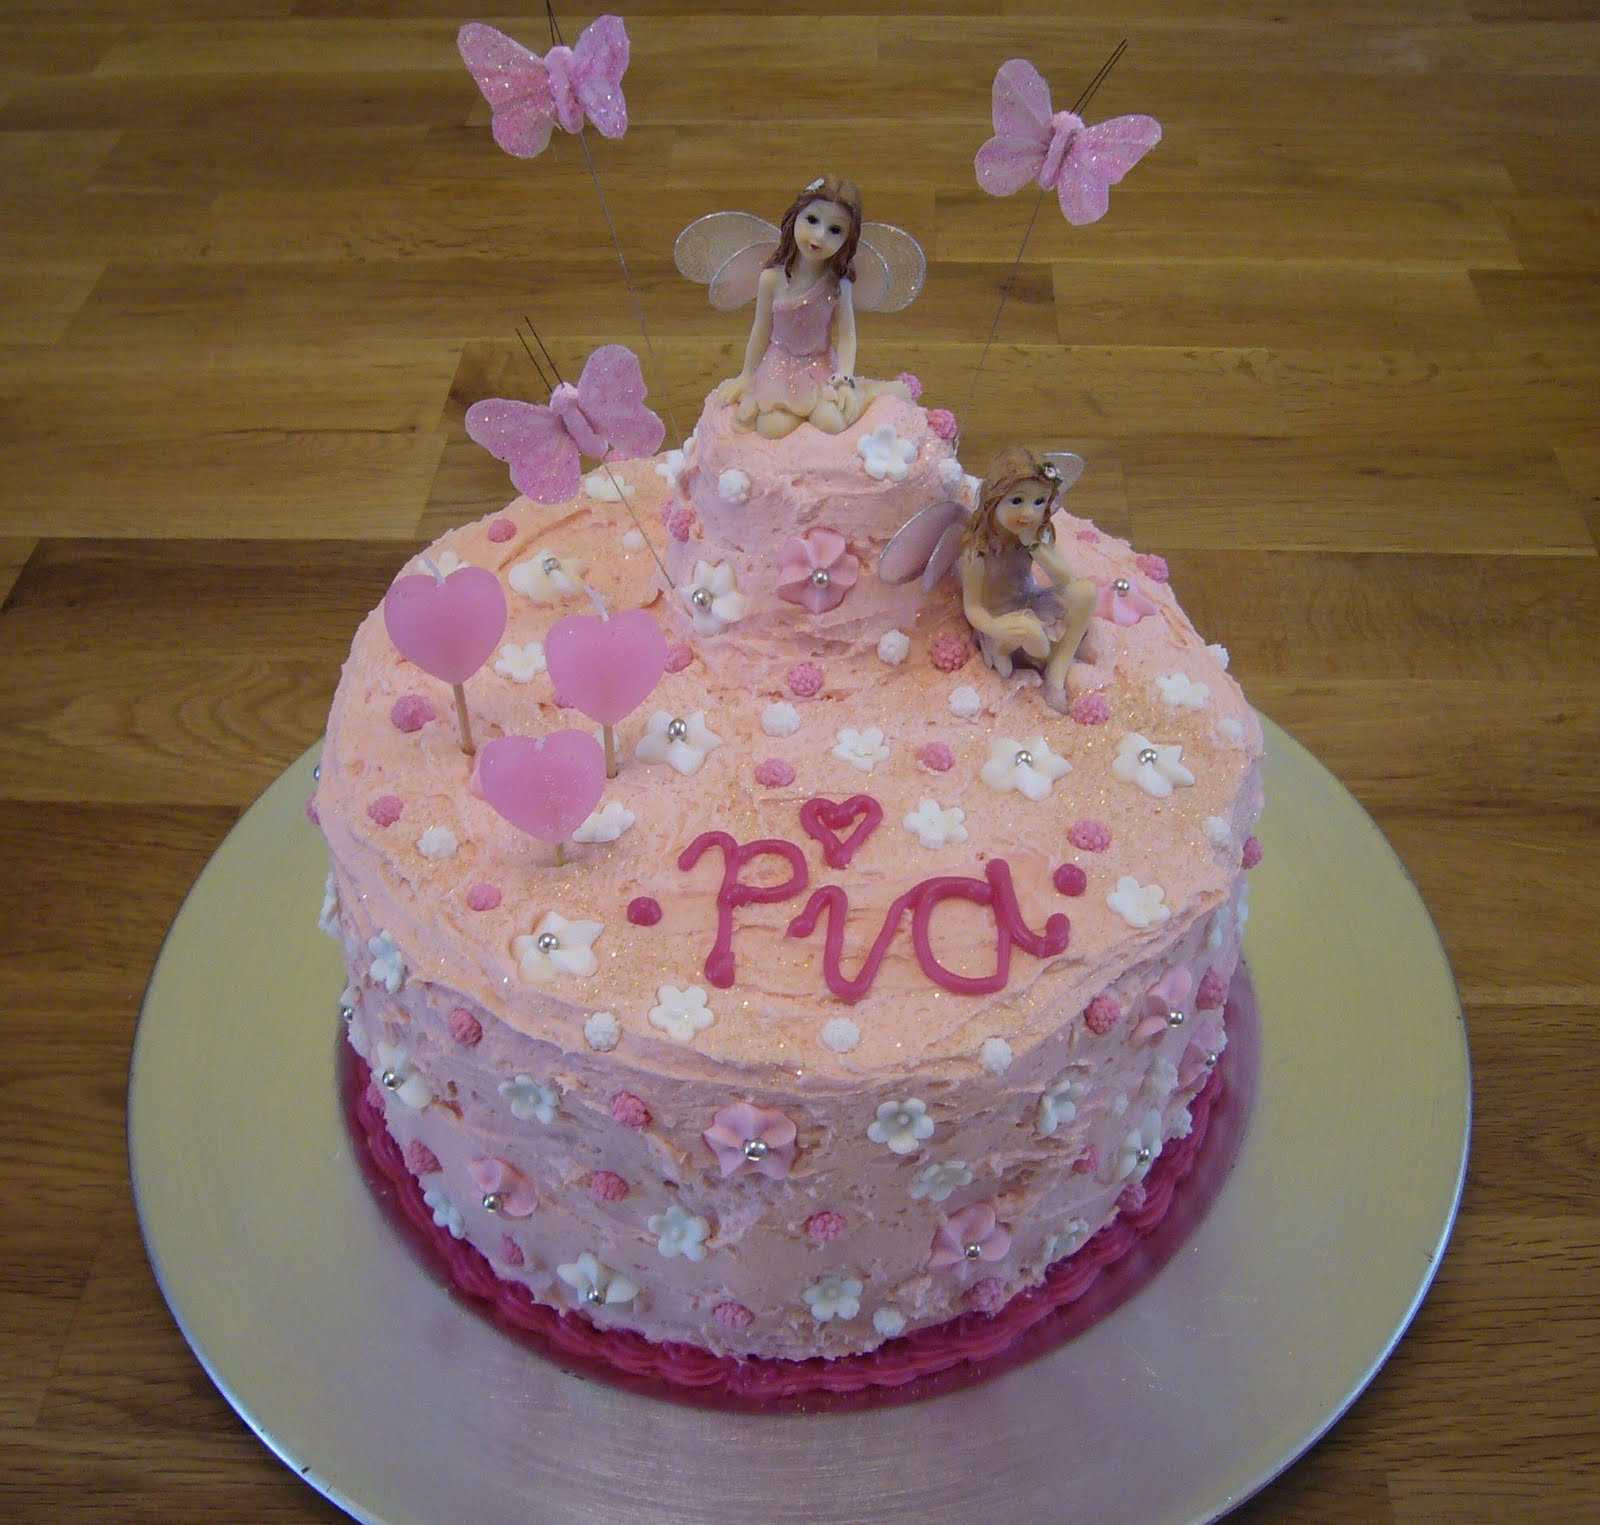 Fairy Princess Cake Images : Orchard Lane Cakes: Fairy Princess Cake